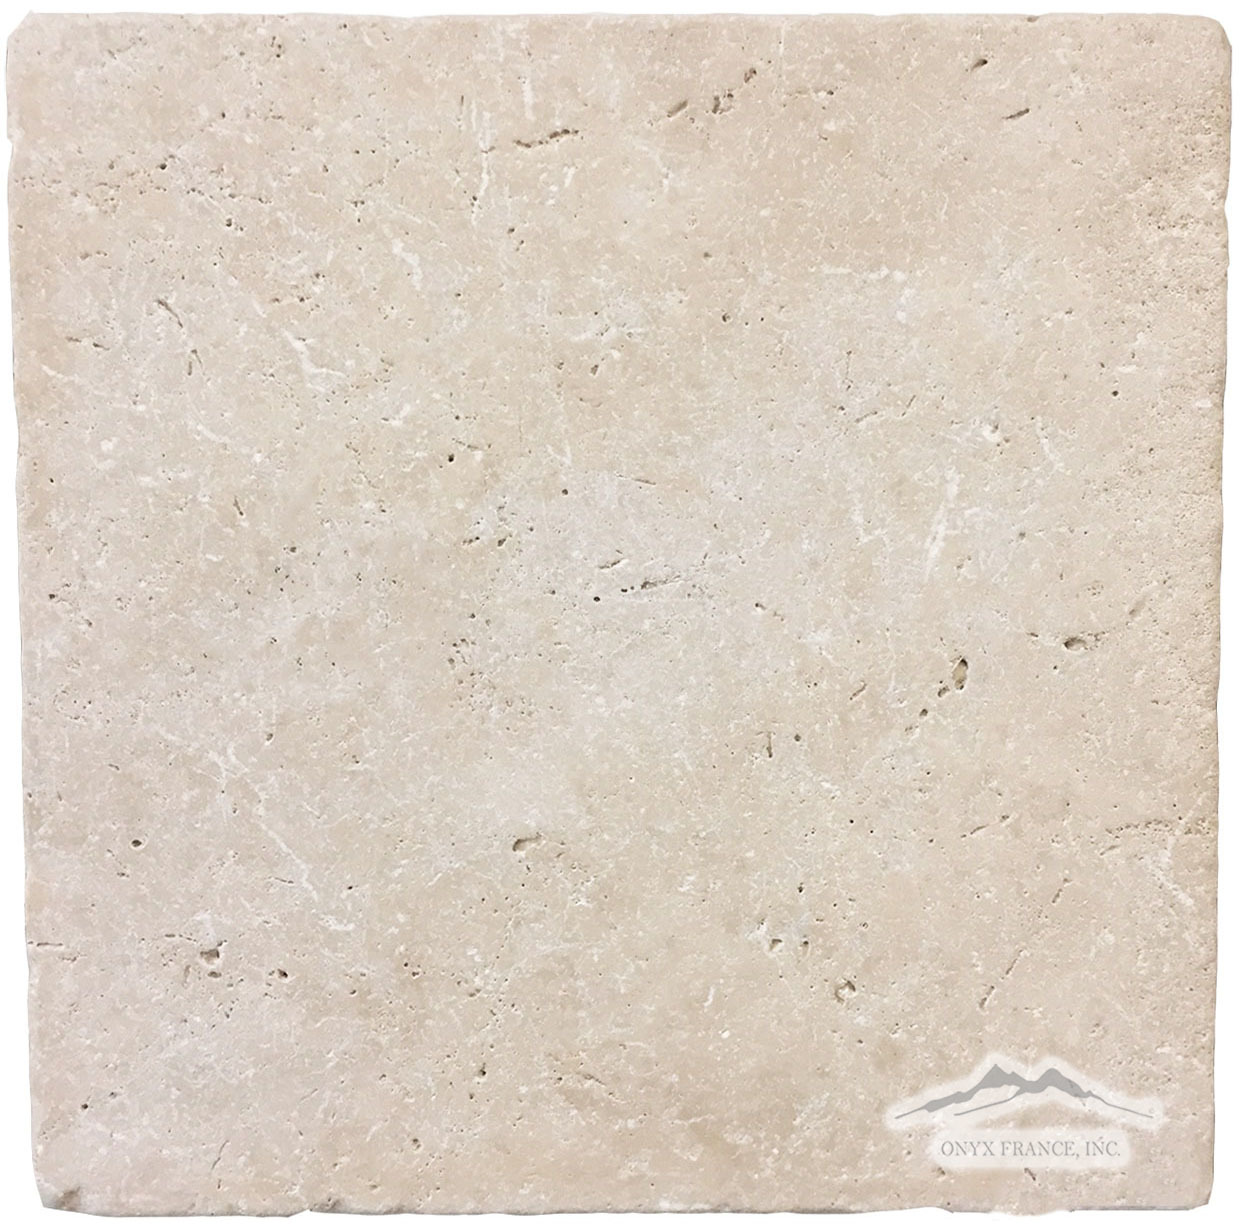 "Durango Travertine 12"" x 12"" Tumbled"